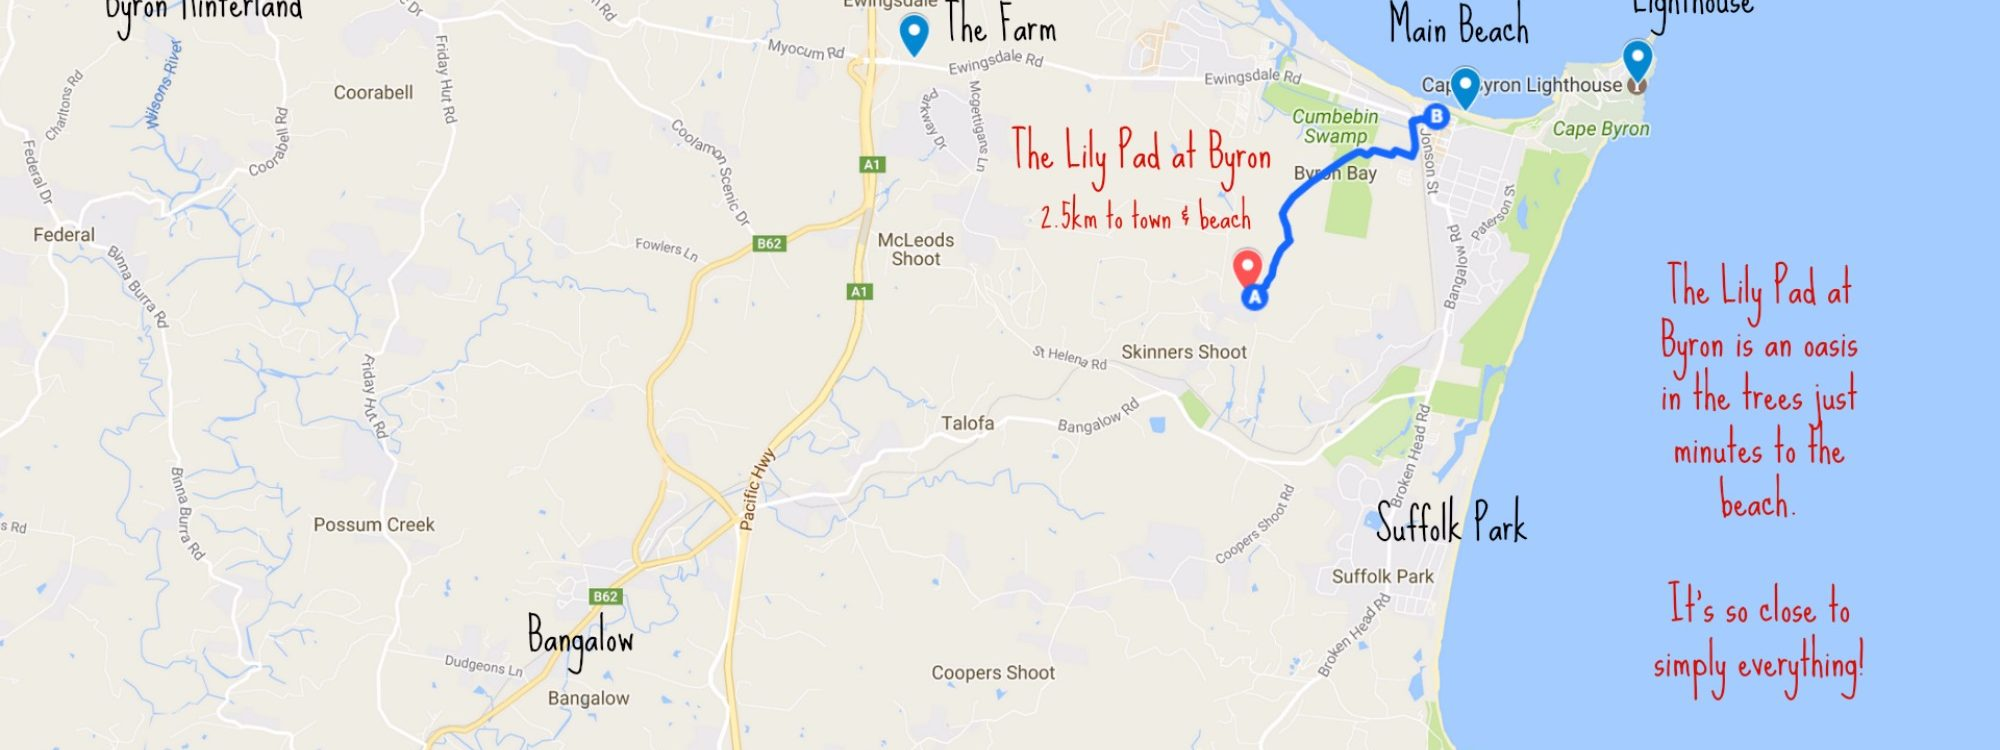 The Lily Pad at Byron is so close to everything, just a 3 minute drive to Main Beach!